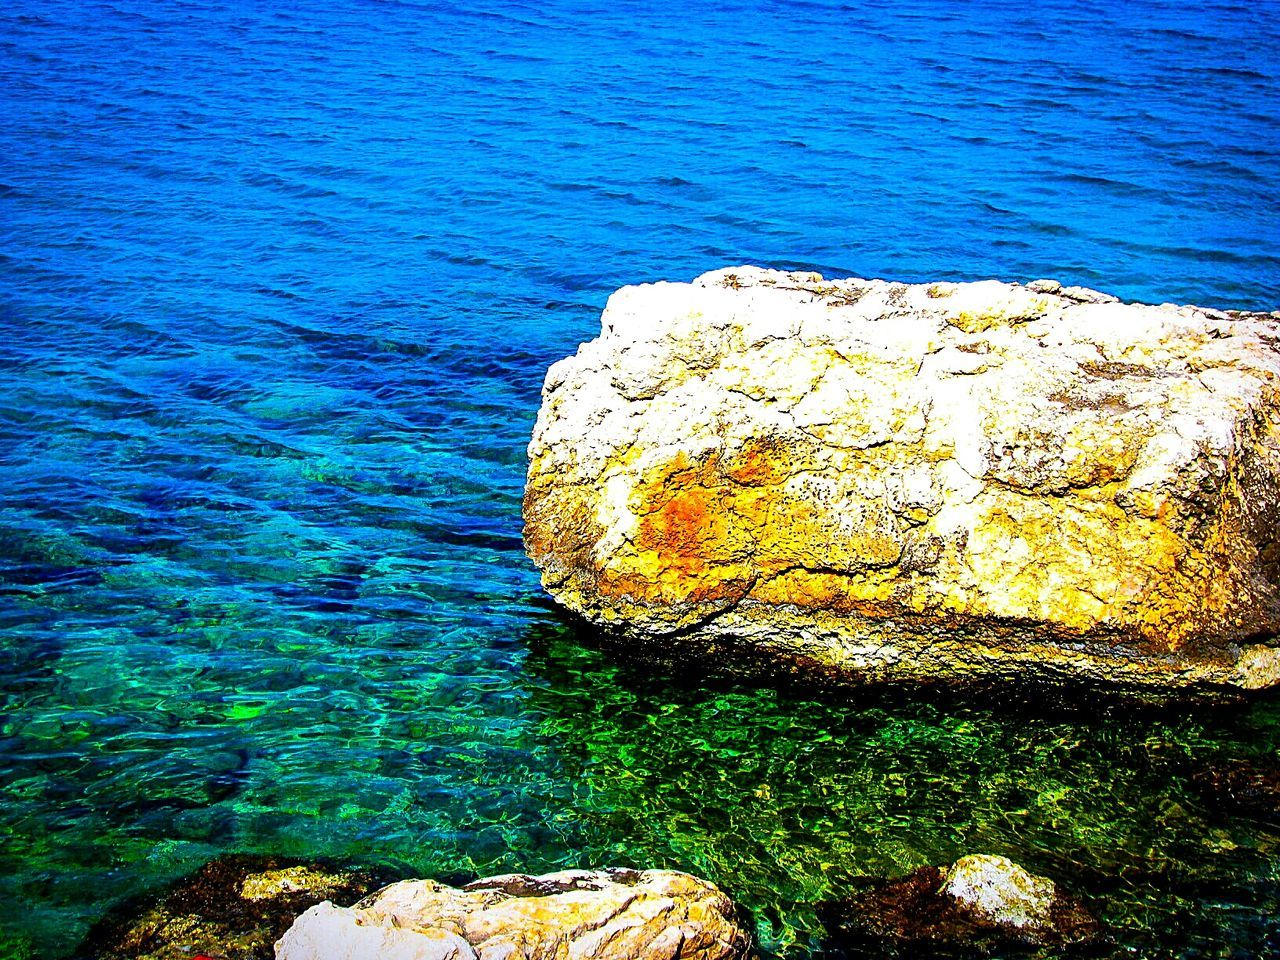 rock - object, blue, water, sea, nature, beauty in nature, no people, outdoors, tranquility, day, scenics, close-up